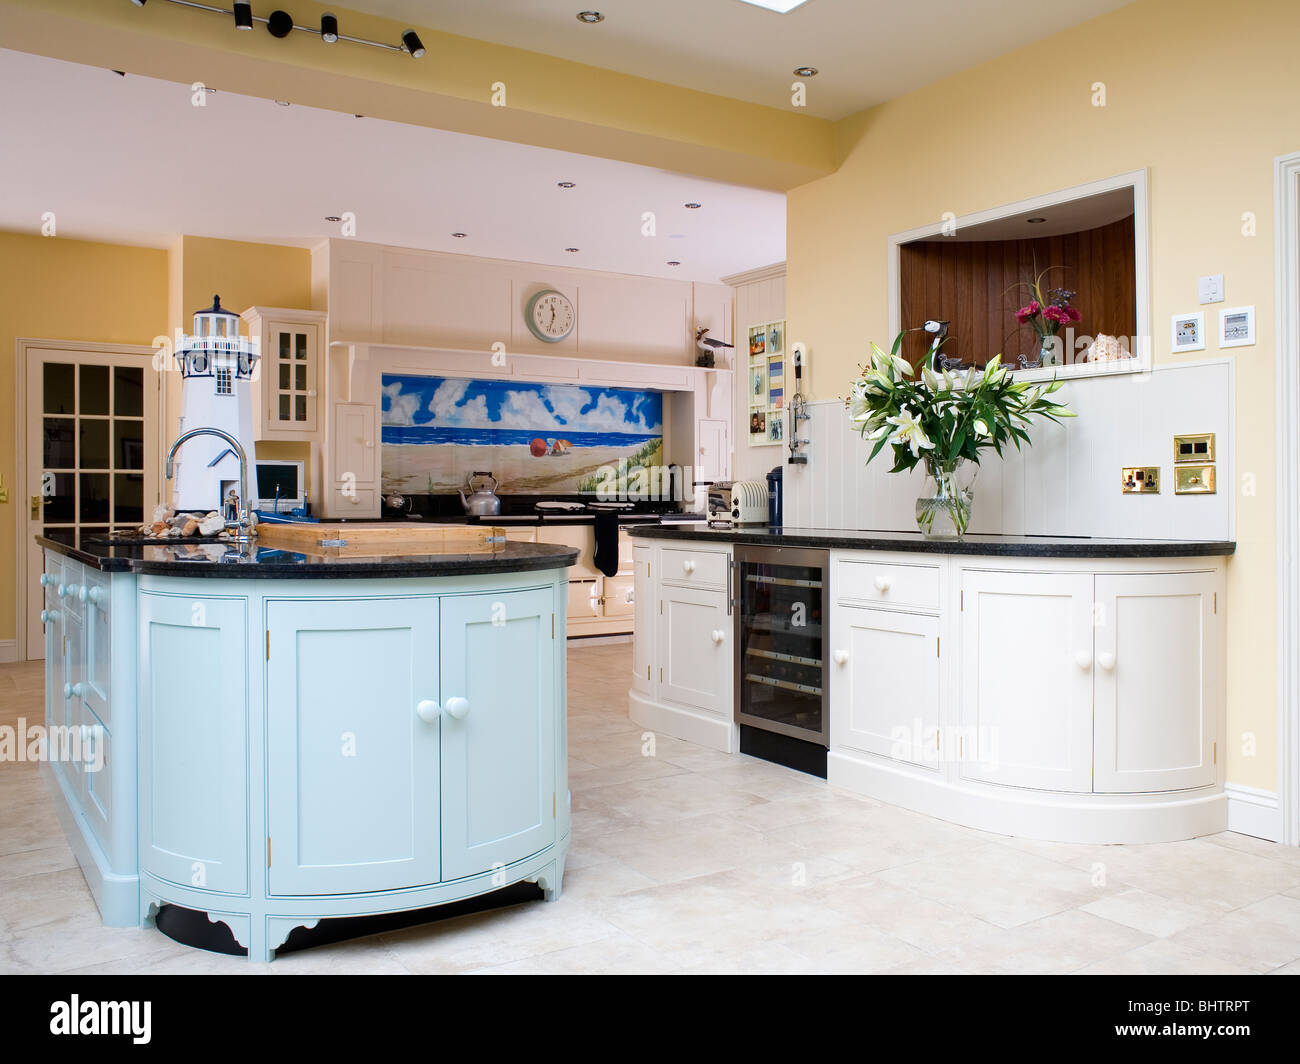 Pastel Blue Island Unit In Large Pale Yellow Kitchen Extension With Fitted Cream Units